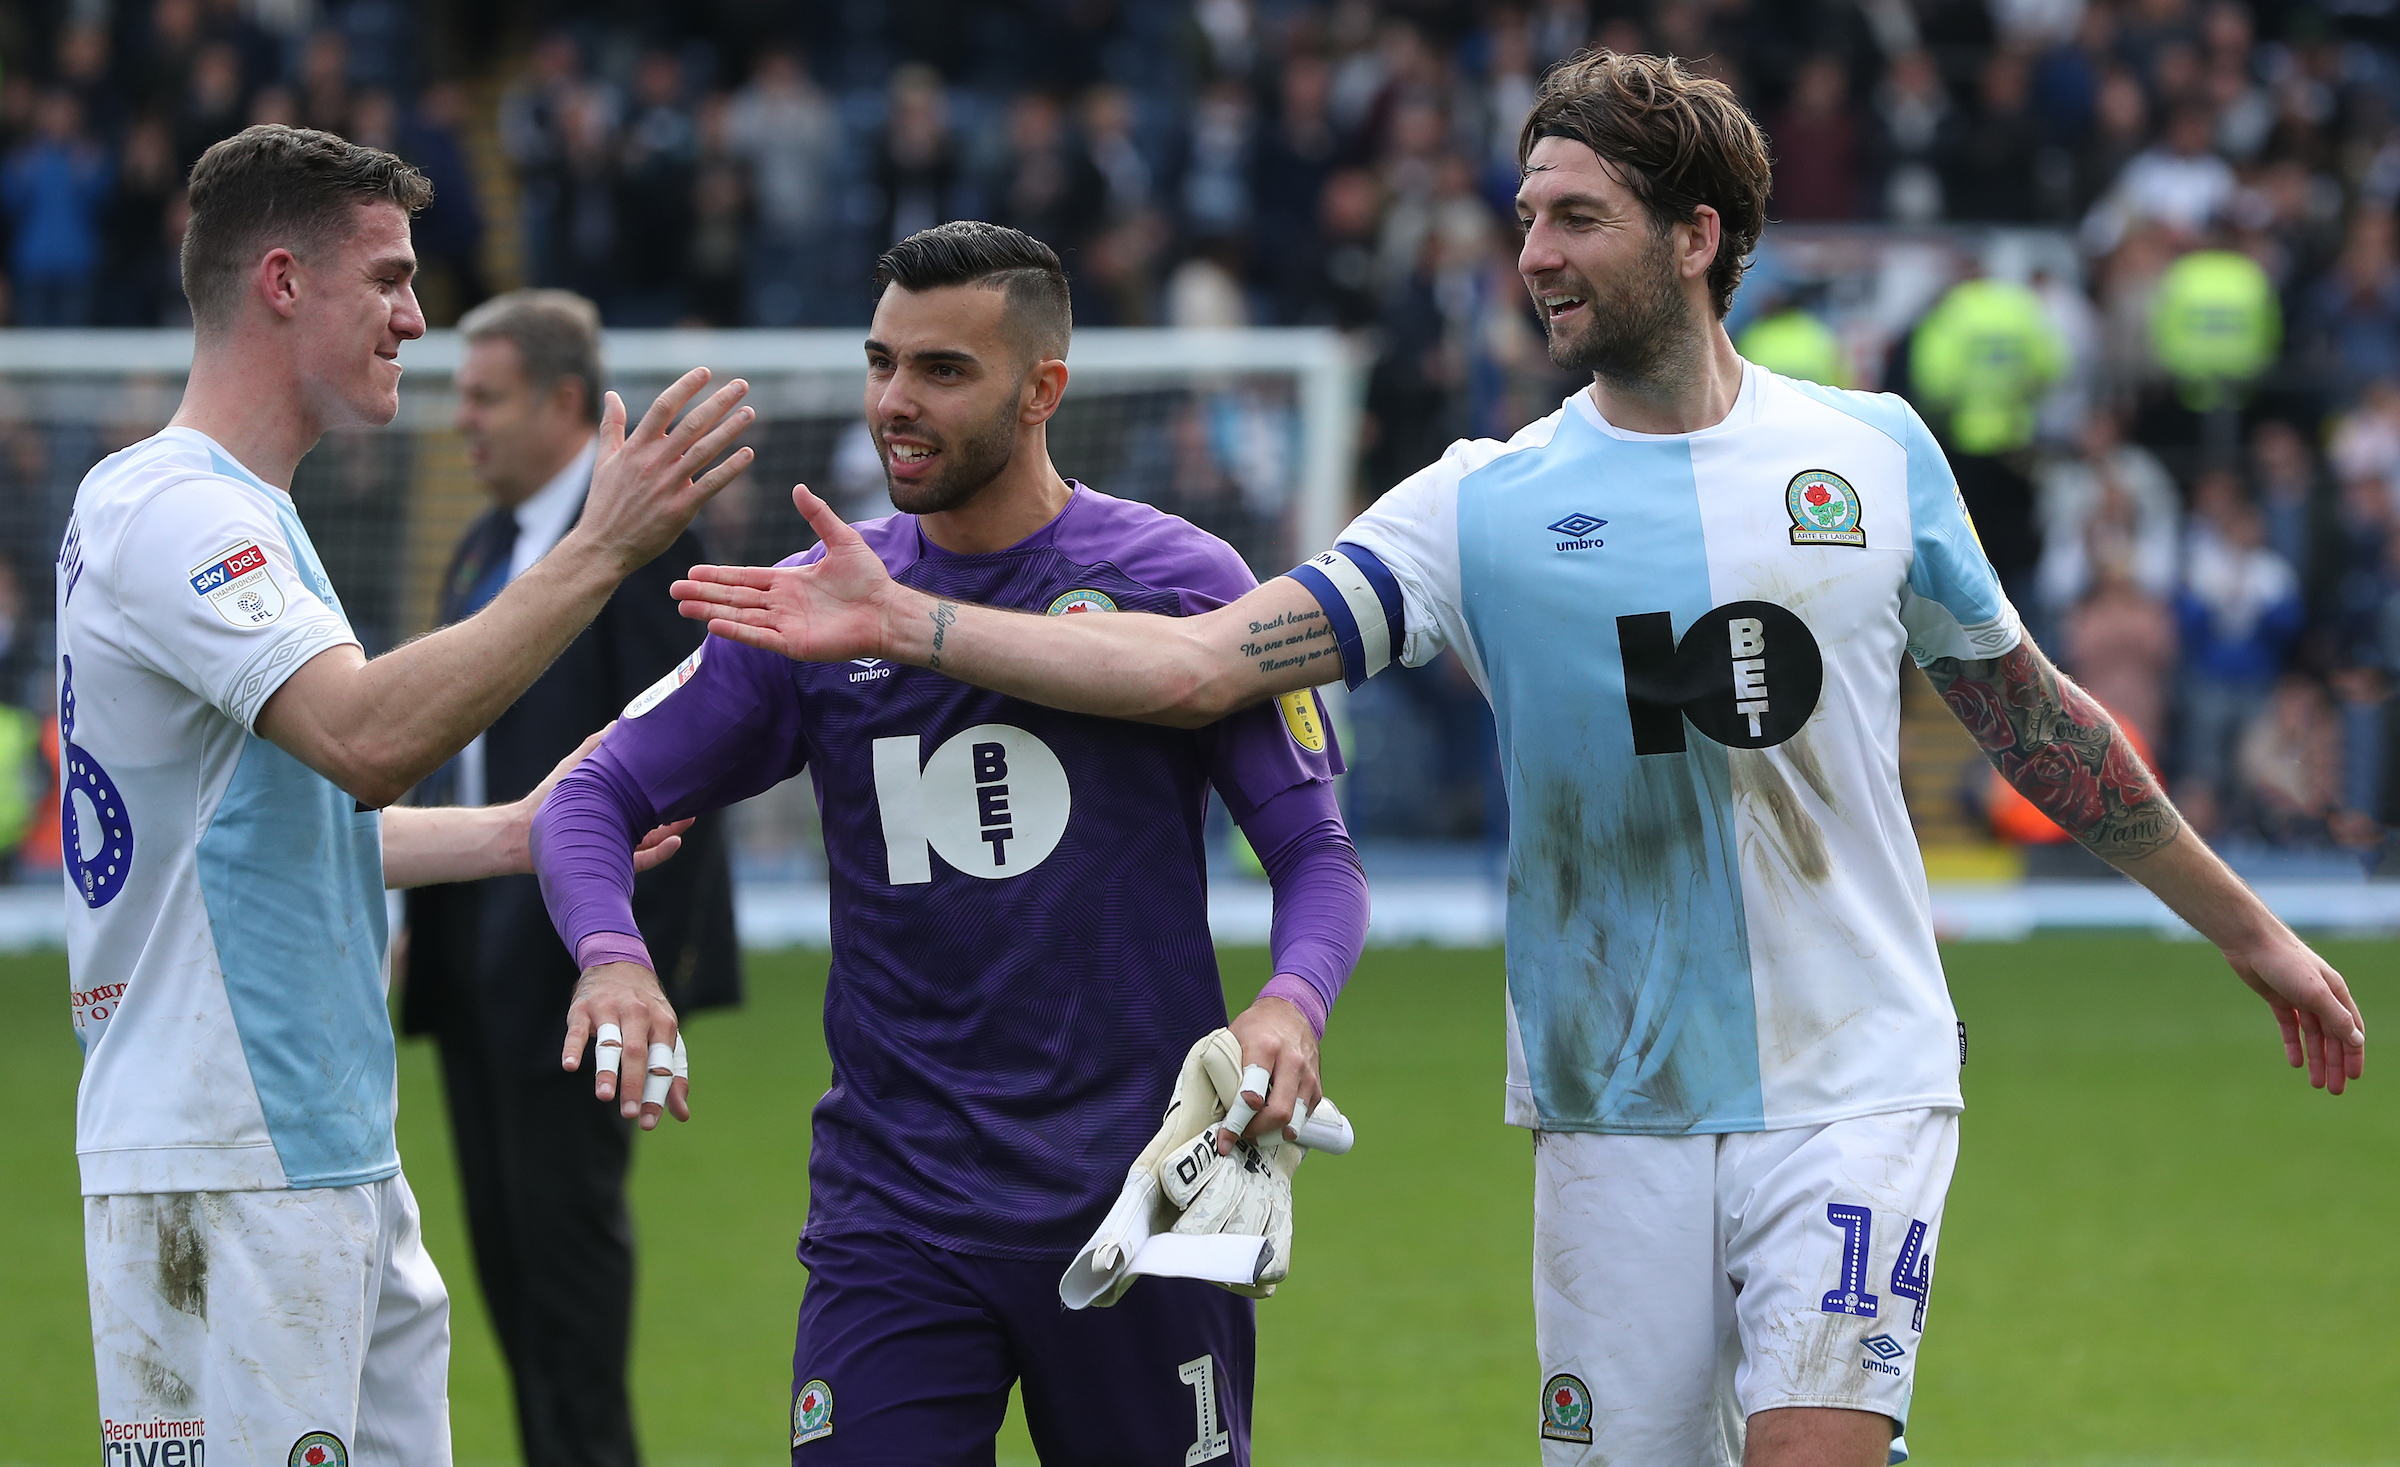 Rovers goalkeeper David Raya with defenders Darragh Lenihan and Charlie Mulgrew